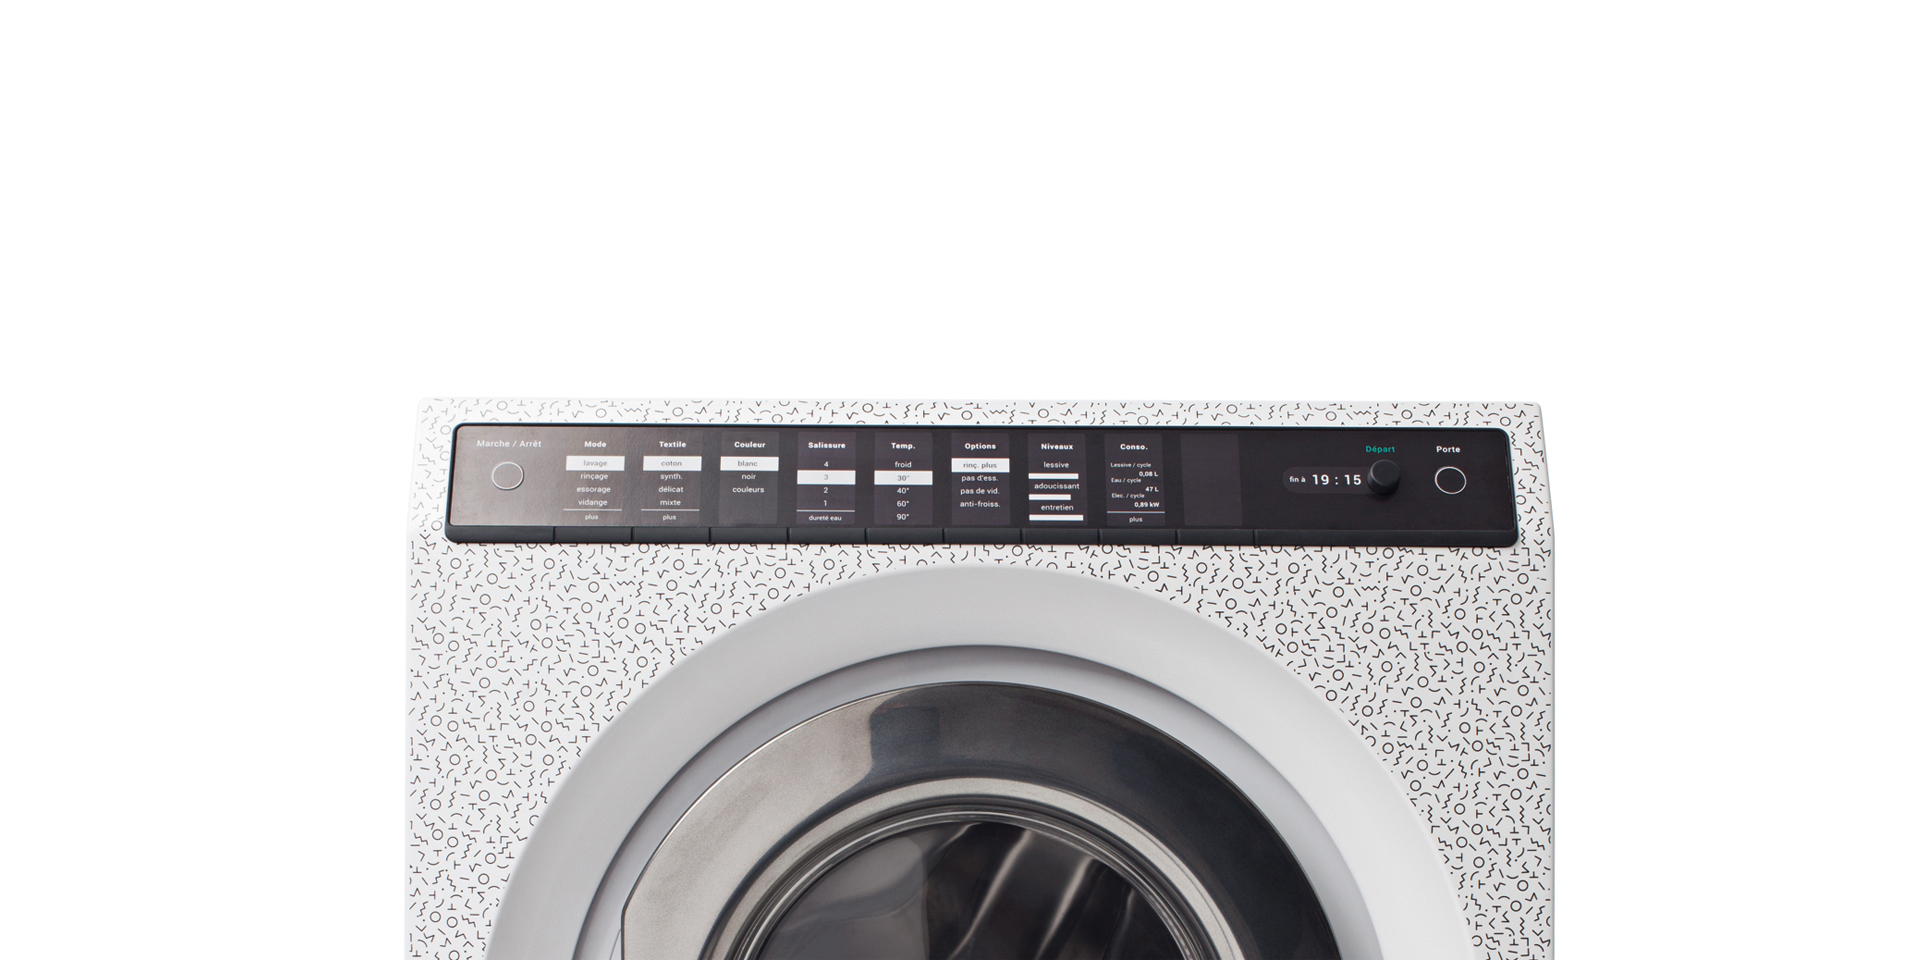 L'increvable lave linge